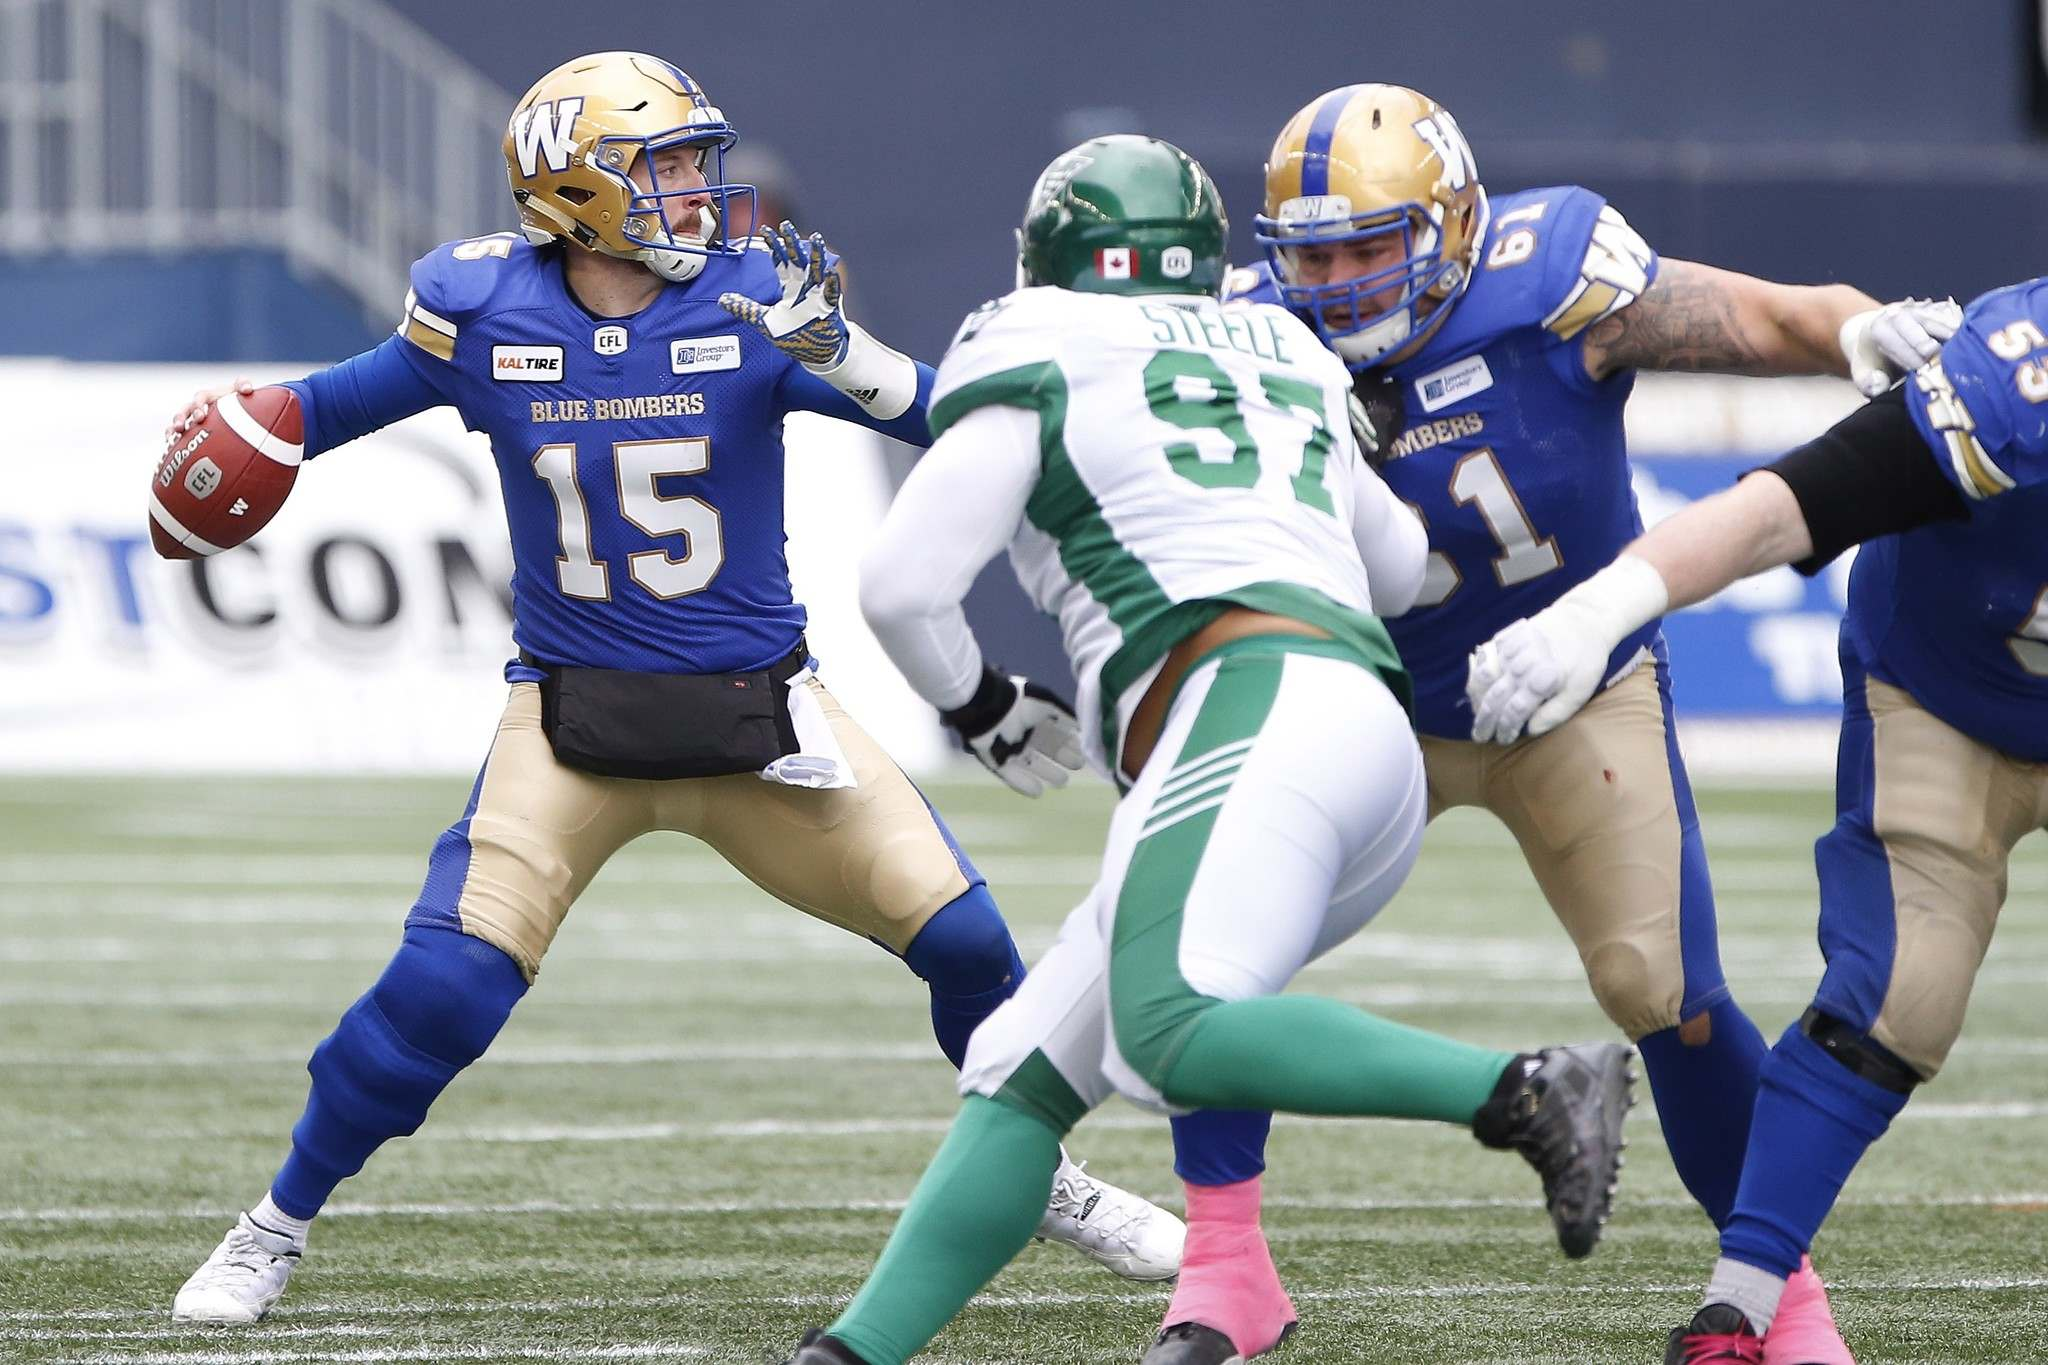 John Woods / THE CANADIAN PRESS FILES</p><p>Winnipeg Blue Bombers quarterback Matt Nichols (15) throws against the Saskatchewan Roughriders on Oct. 13, a game the Bombers won 31-0. </p>